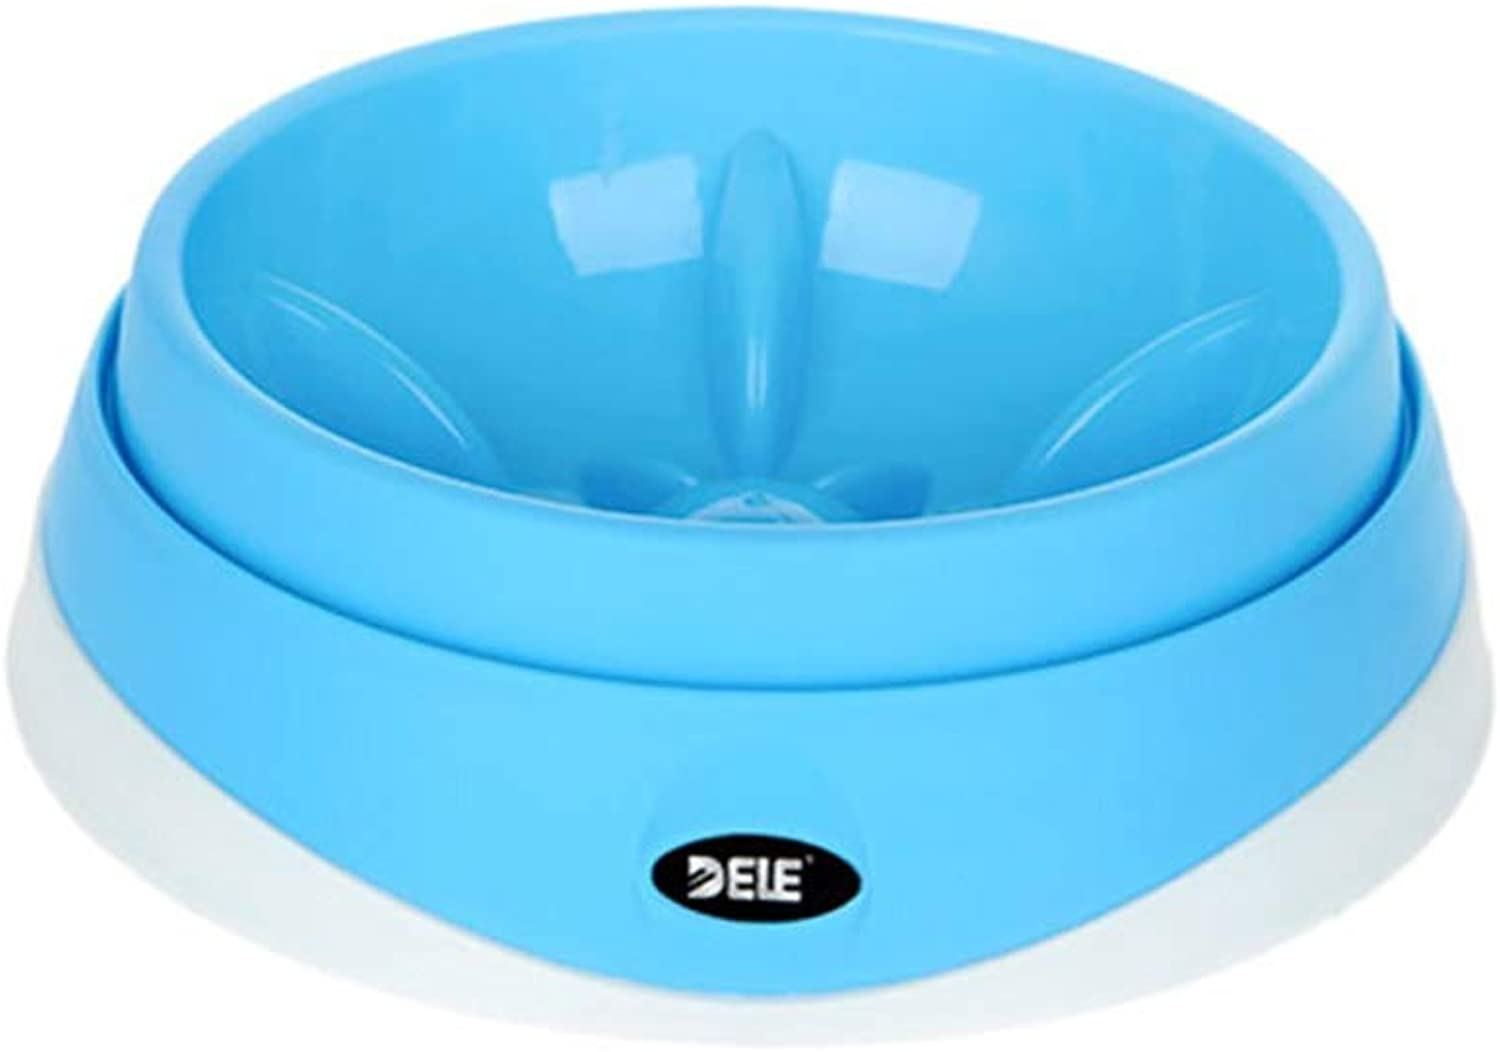 Haoyushangmao Cat Bowl, Cat Food Bowl, Dog Food Bowl, Pet Supplies, Ceramic Bowl, Cat Feeder, Dog Food Bowl, Best Gift Latest Models (color   bluee, Size   Large)